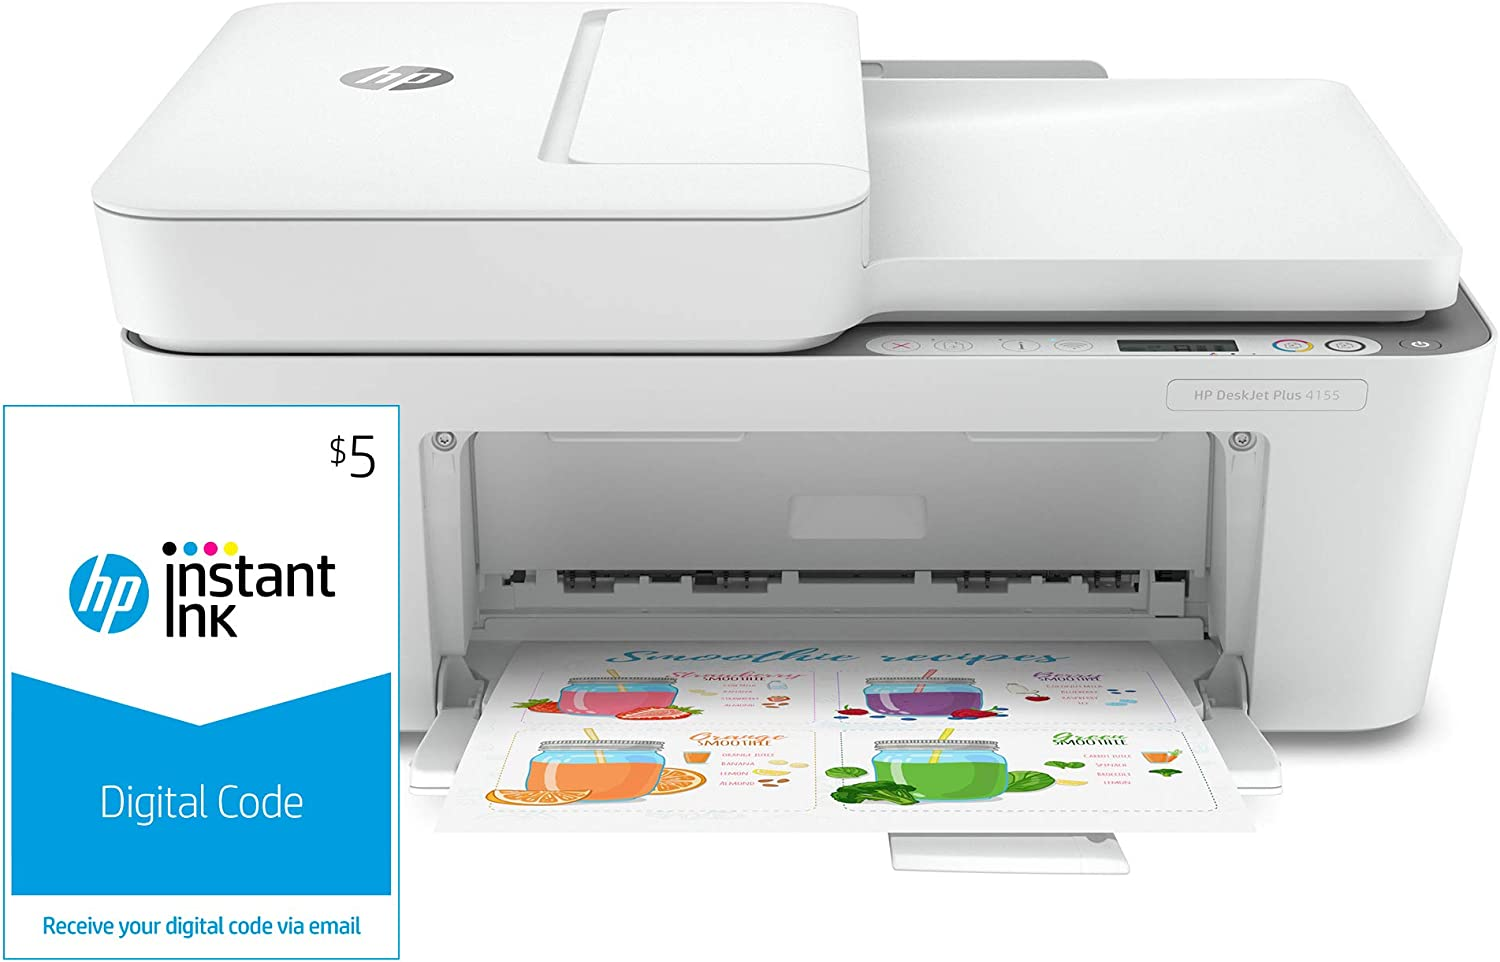 HP DeskJet Plus 4155 All-in-One Printer (3XV13A) and Instant Ink $5 Prepaid Code